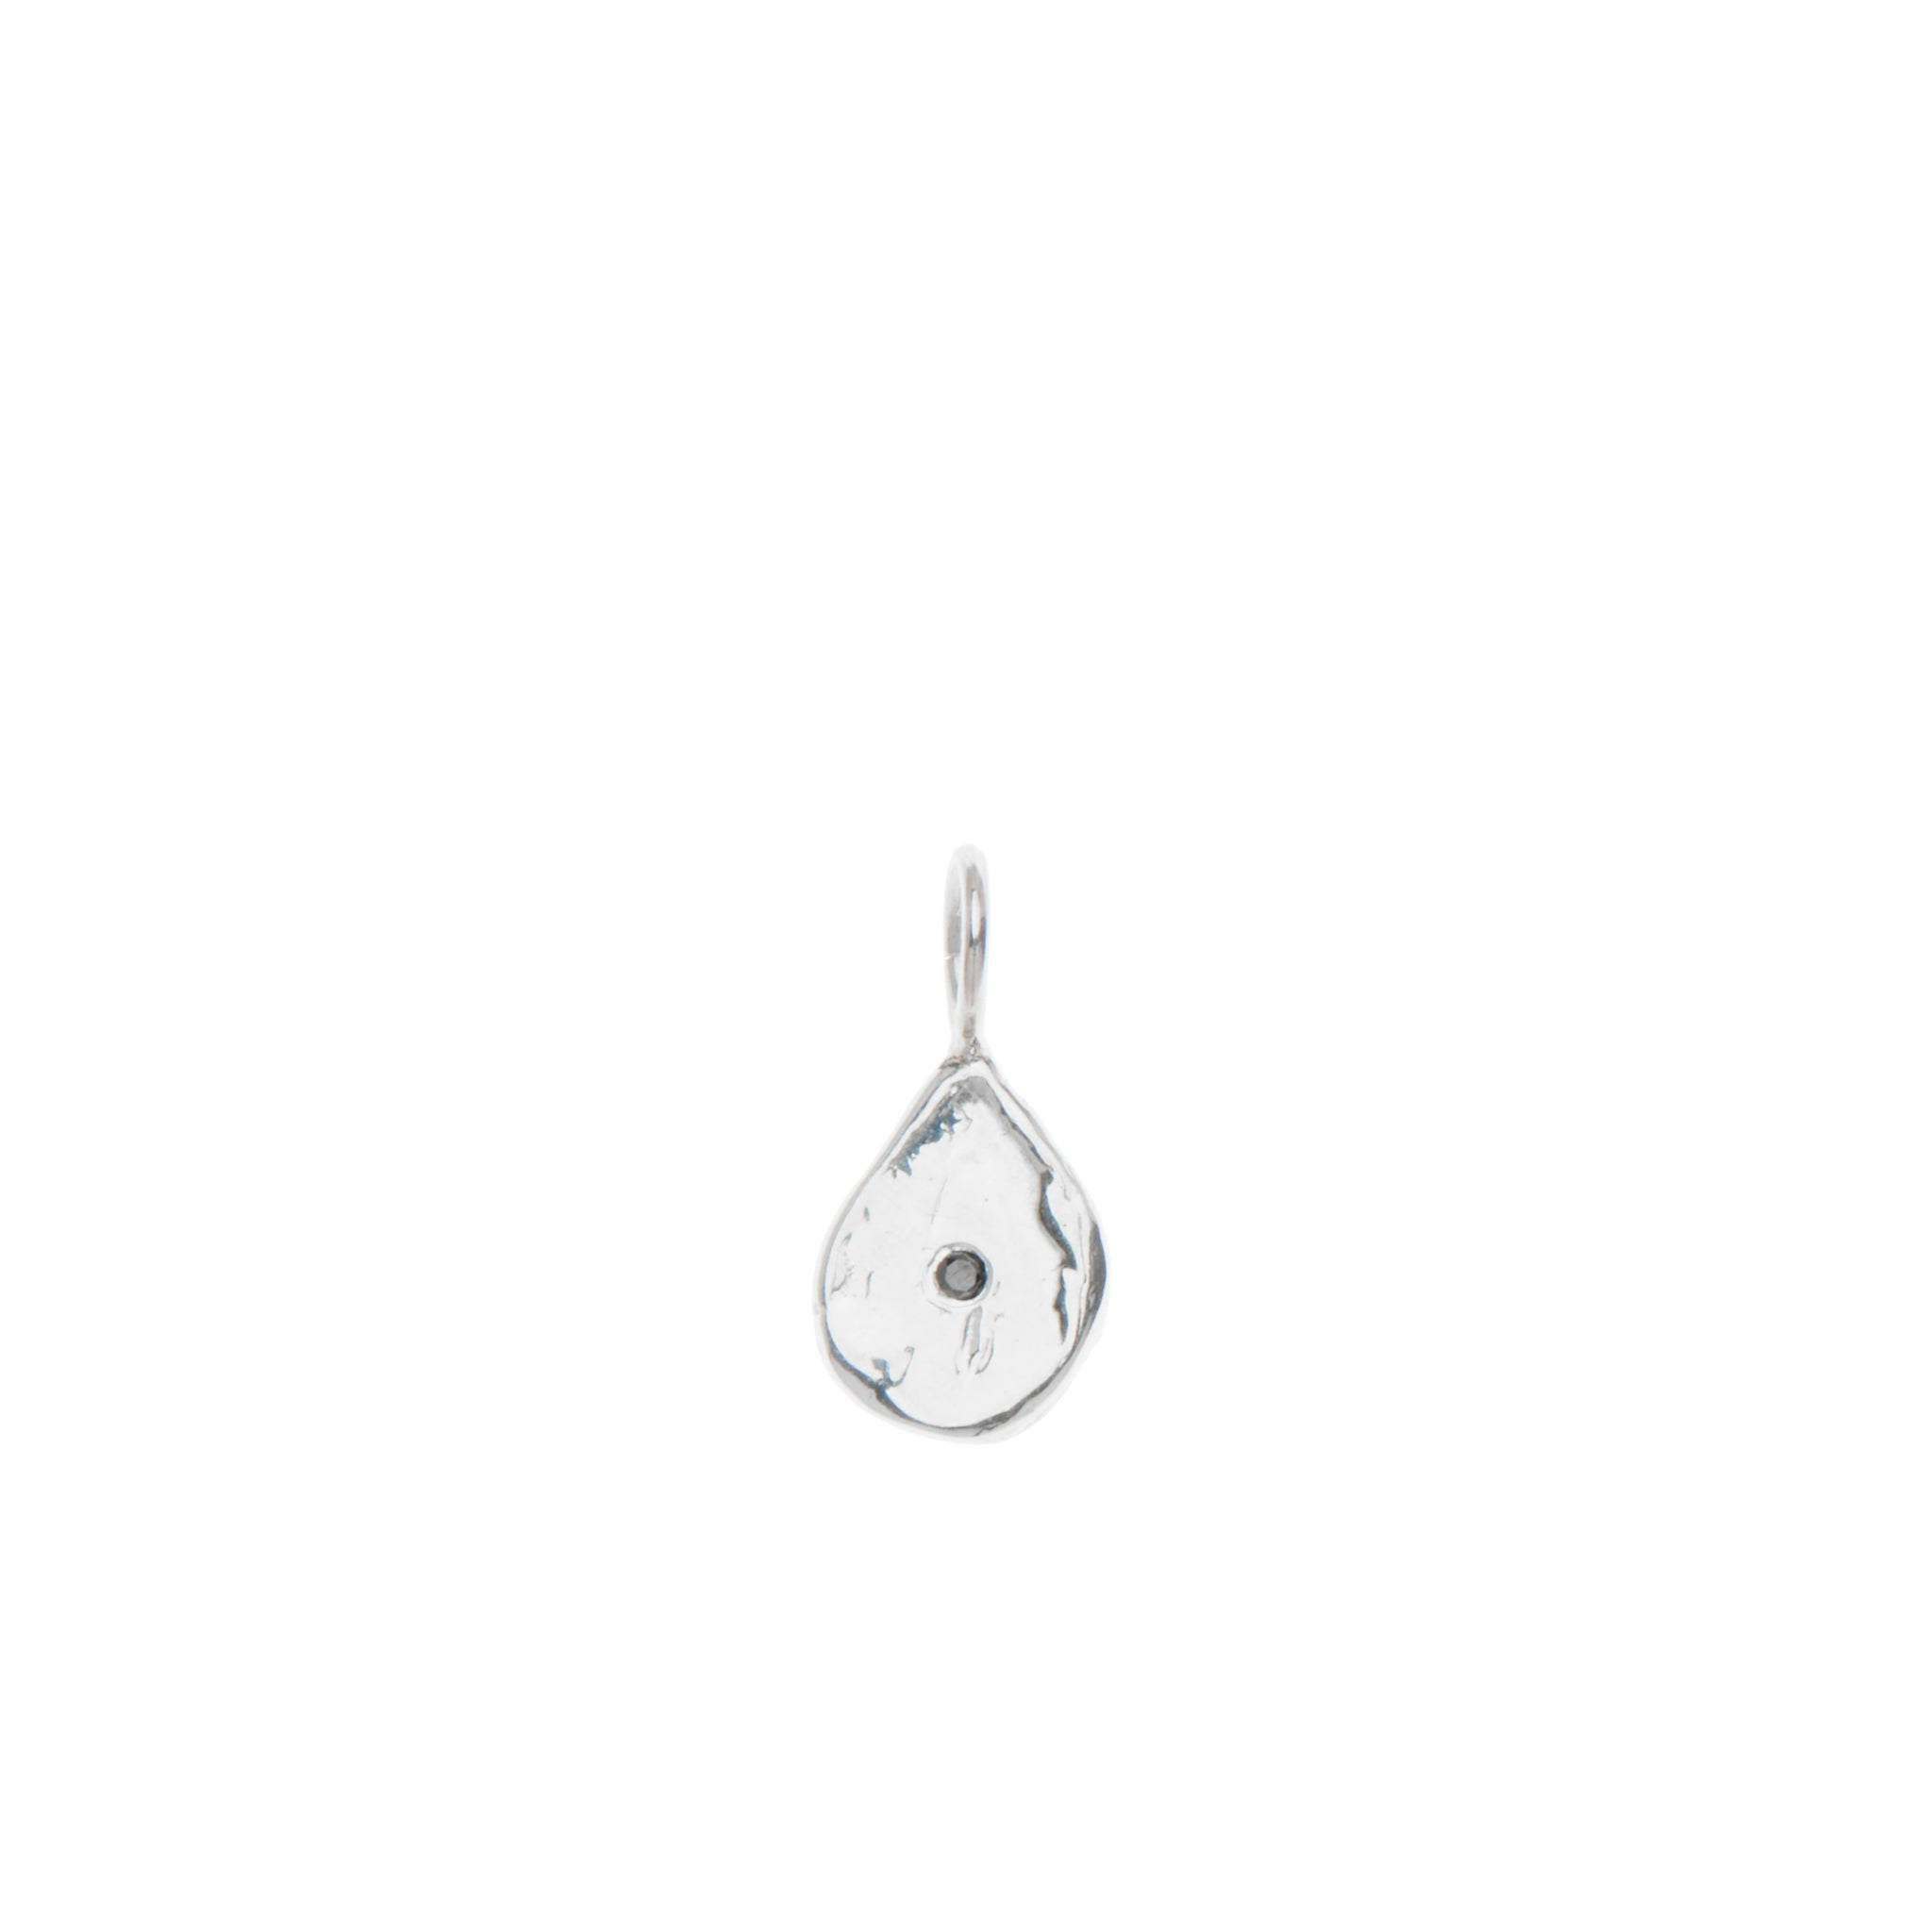 Black Diamond Teardrop Charm